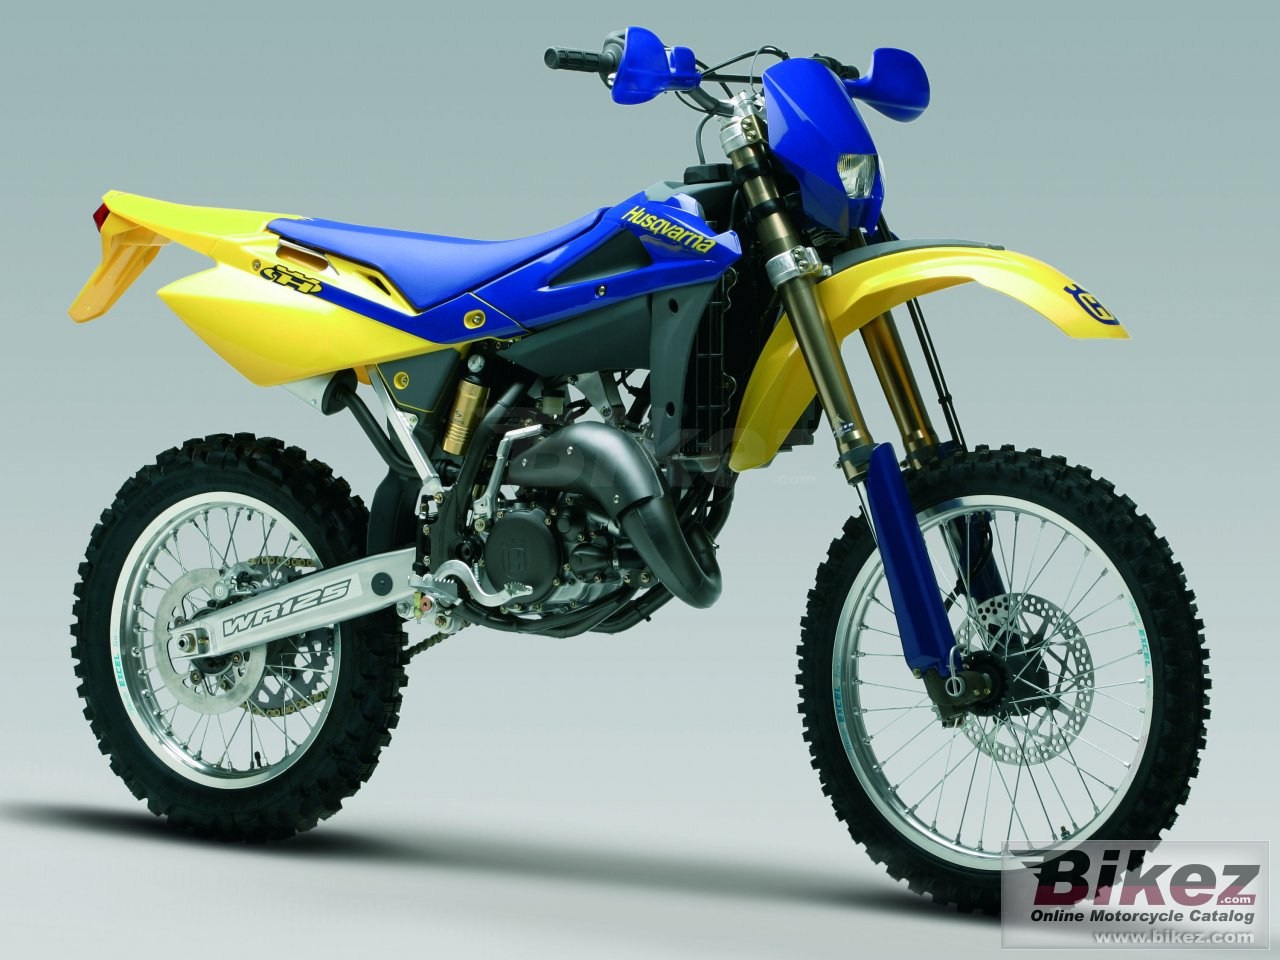 Big Husqvarna wr 125 picture and wallpaper from Bikez.com